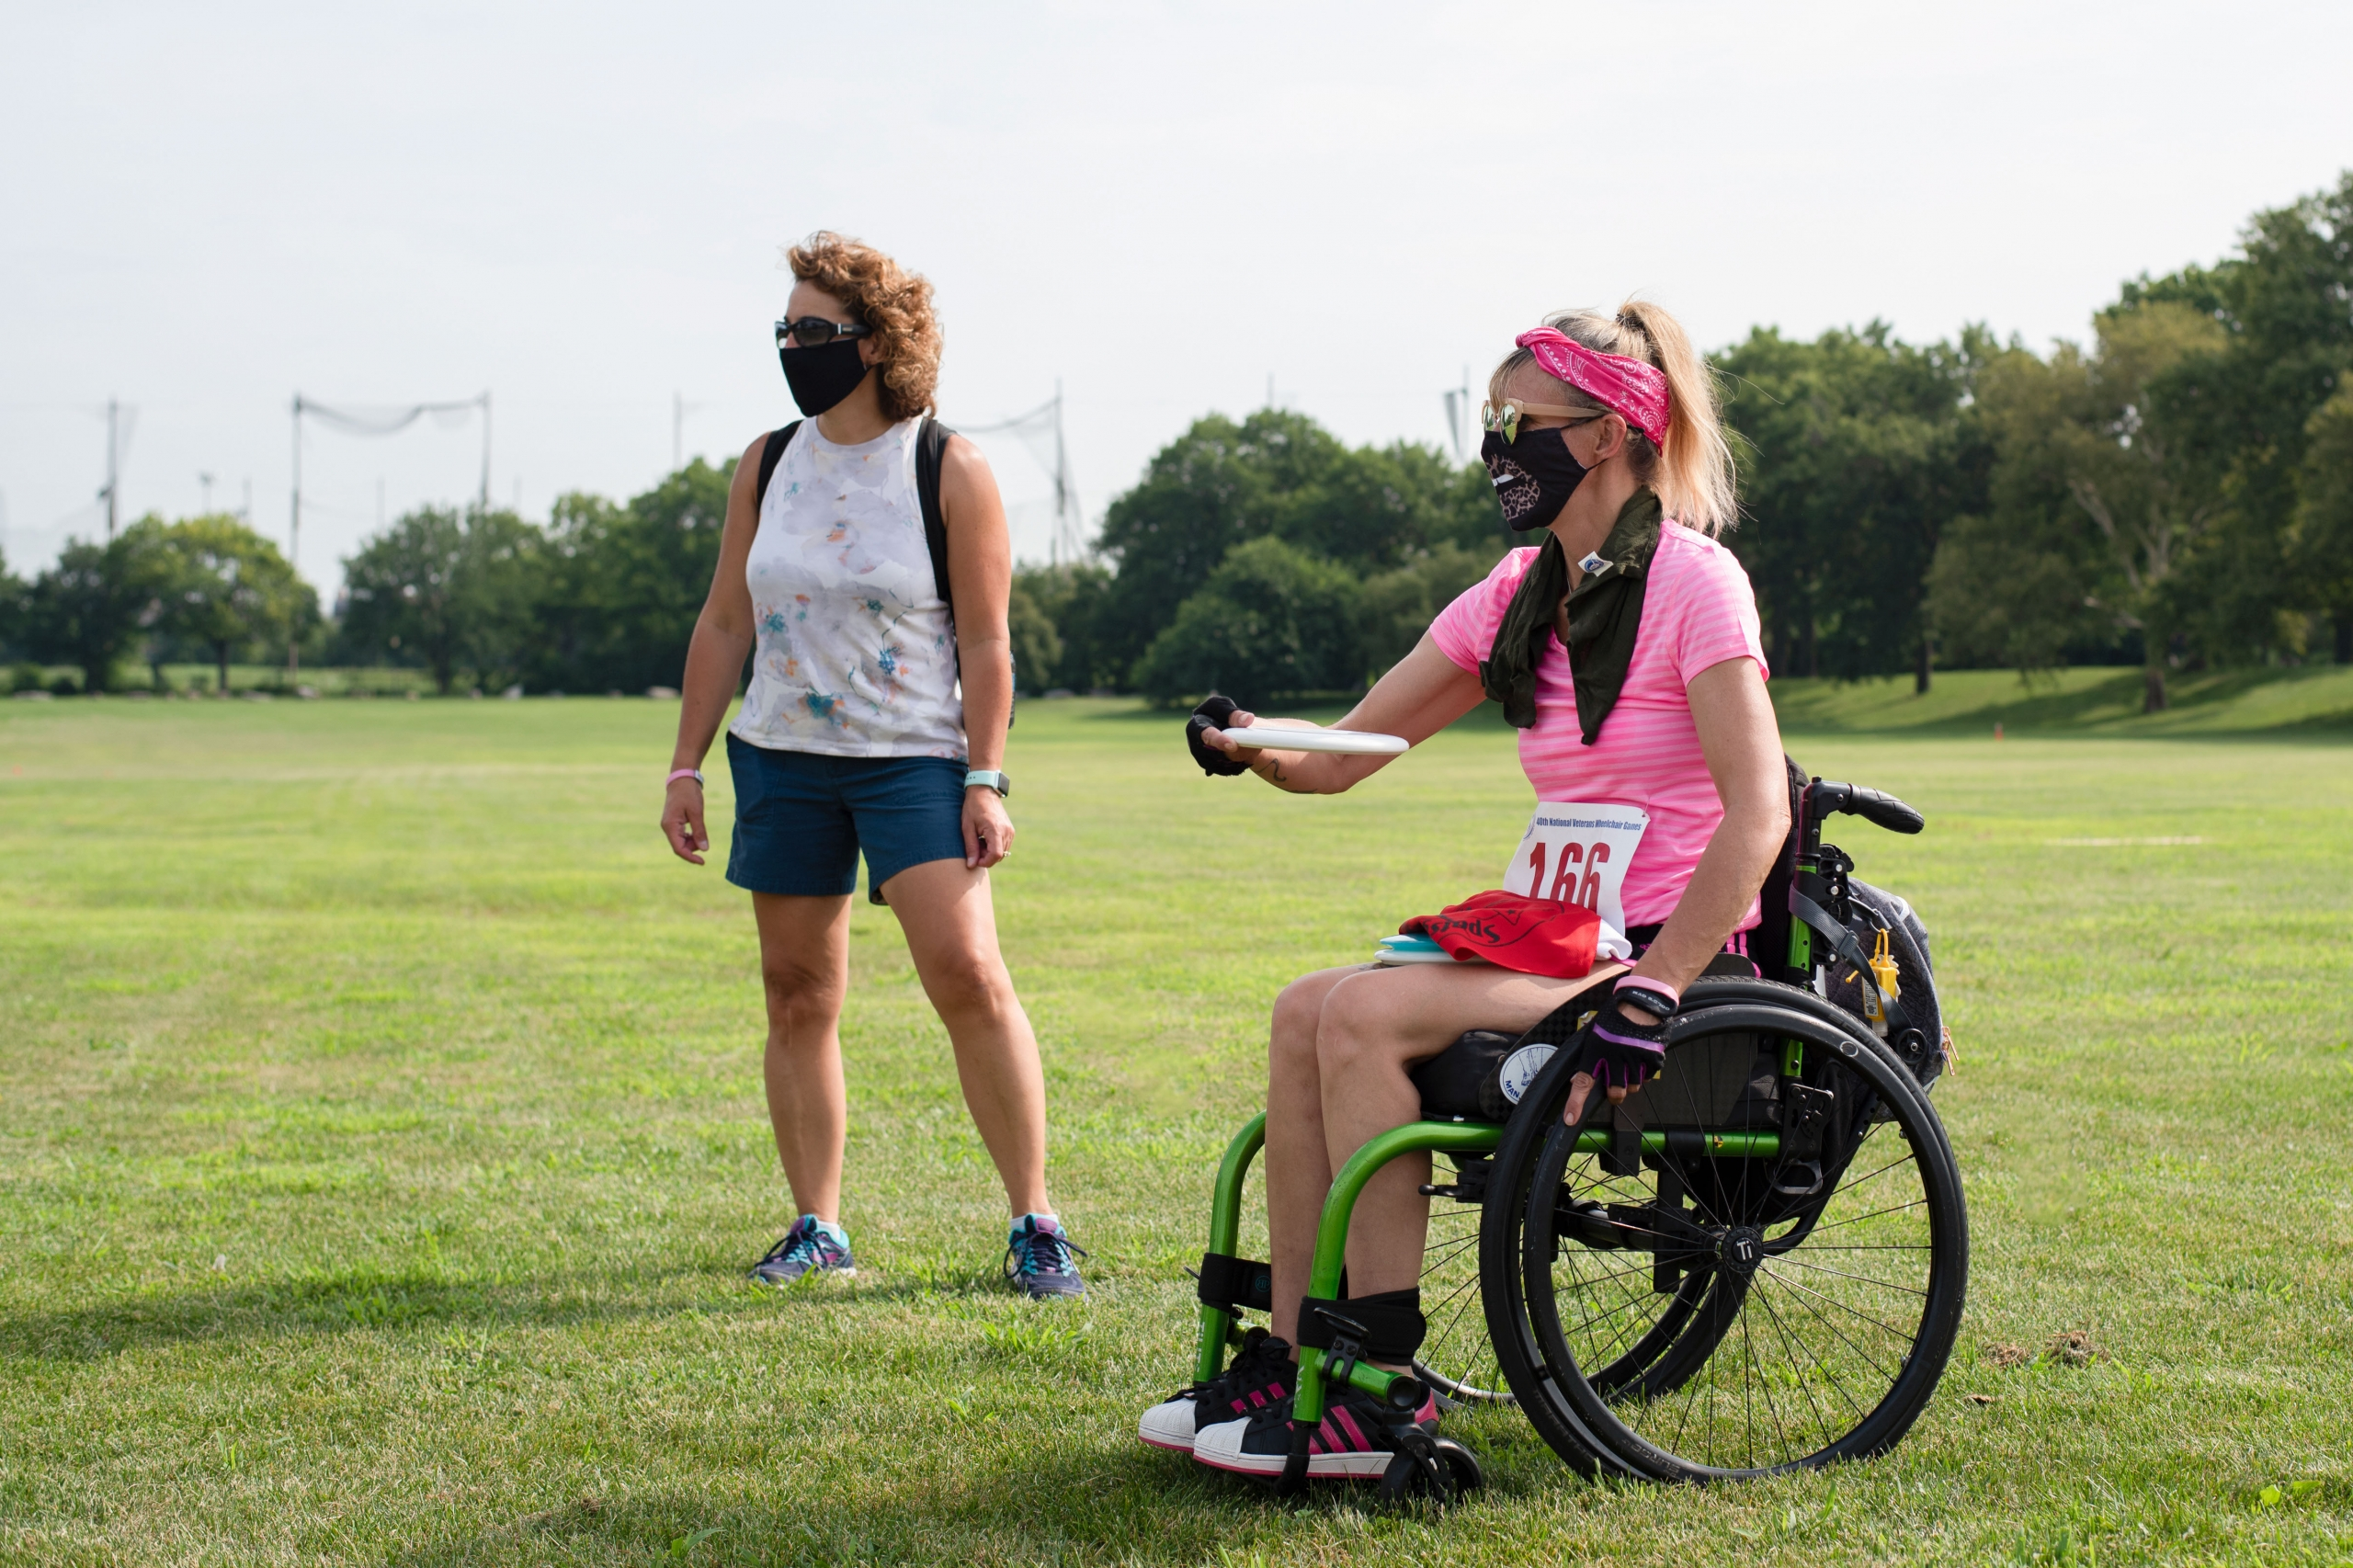 Competitor at Wheelchair Games finds motivation